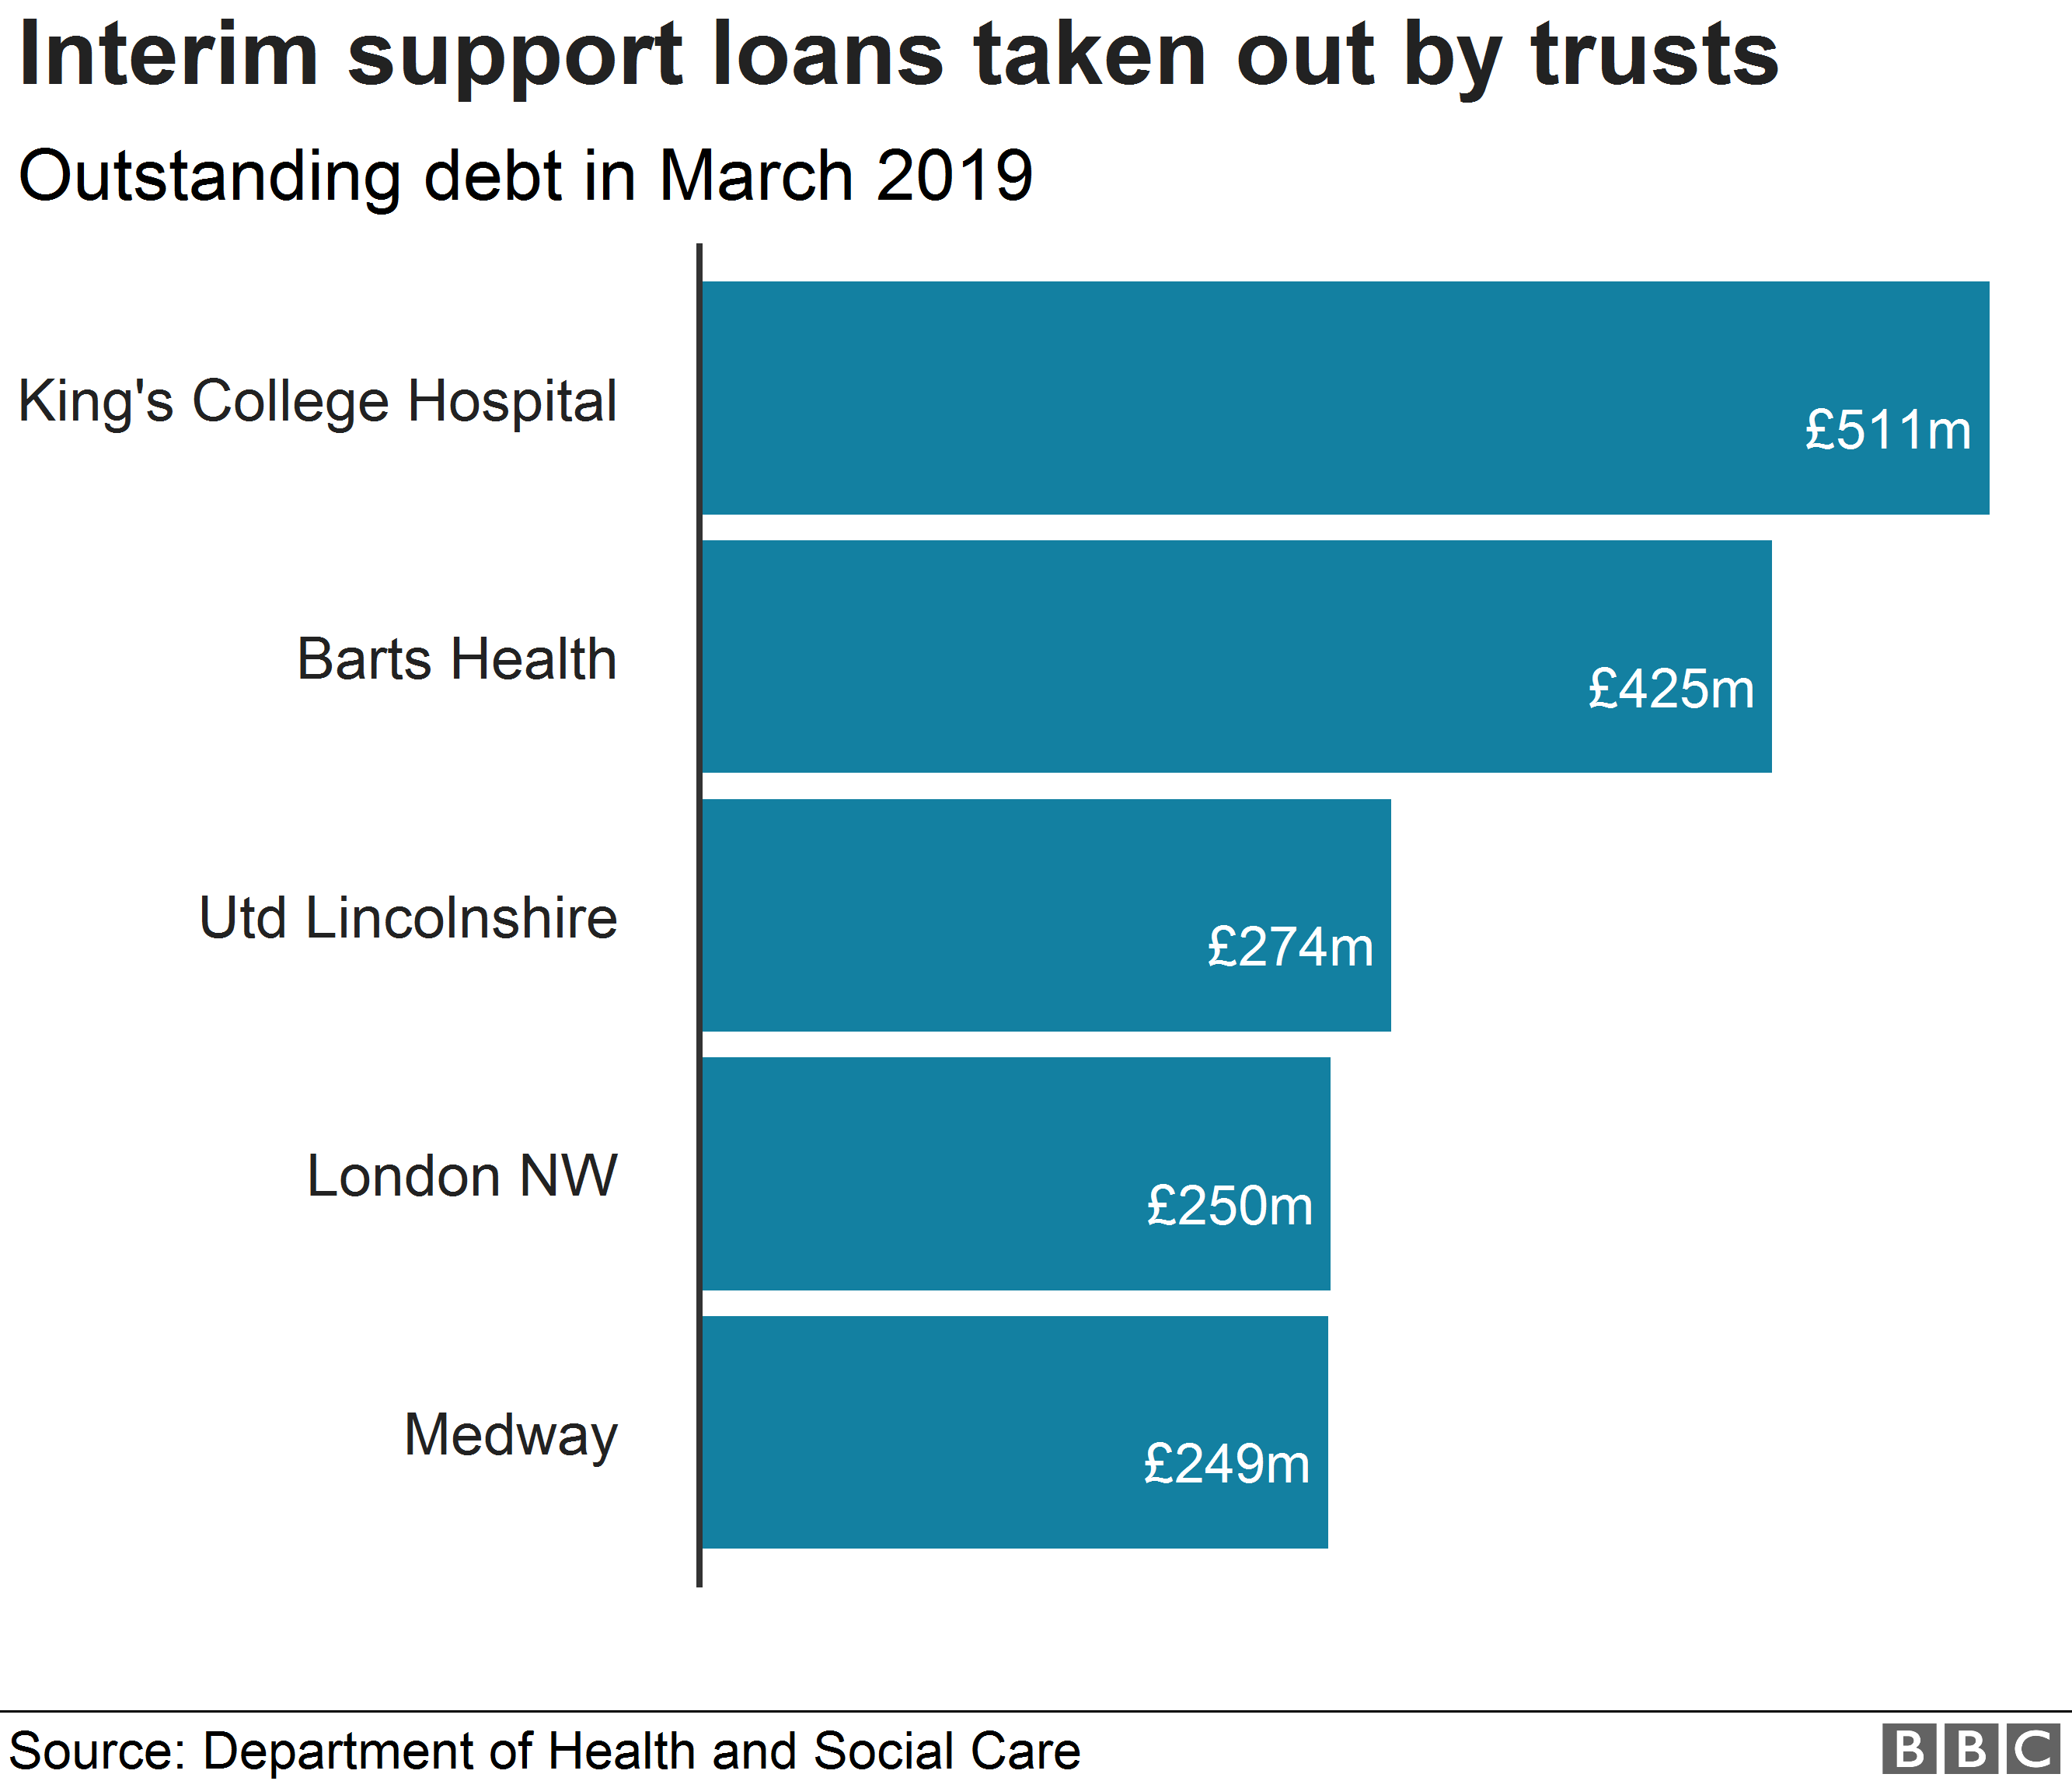 Trusts in England with the highest amount of outstanding debt